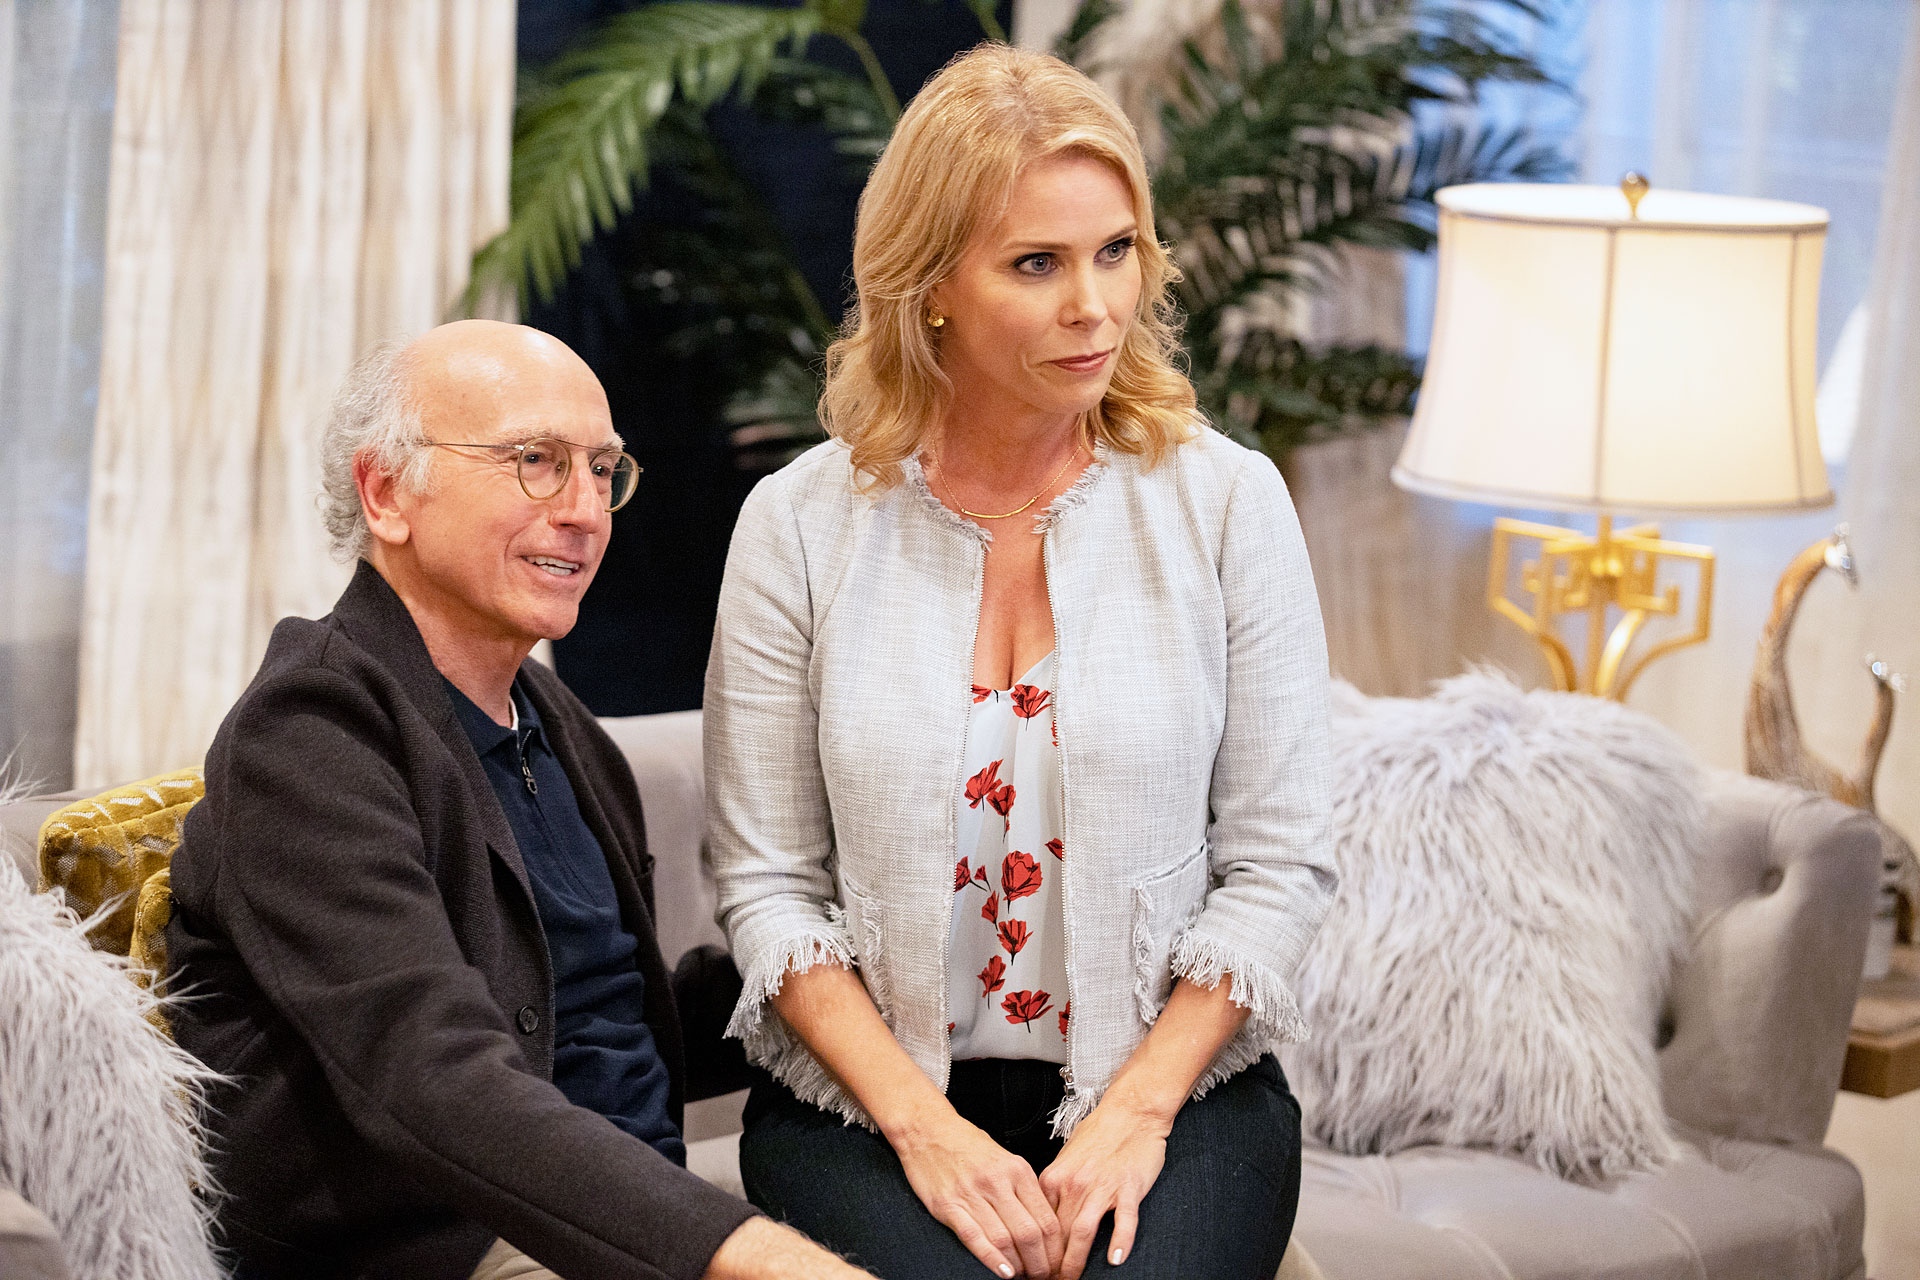 Larry David and Cheryl Hines in Curb Your Enthusiasm Cheryl Hines 25 Things You Don't Know About Me